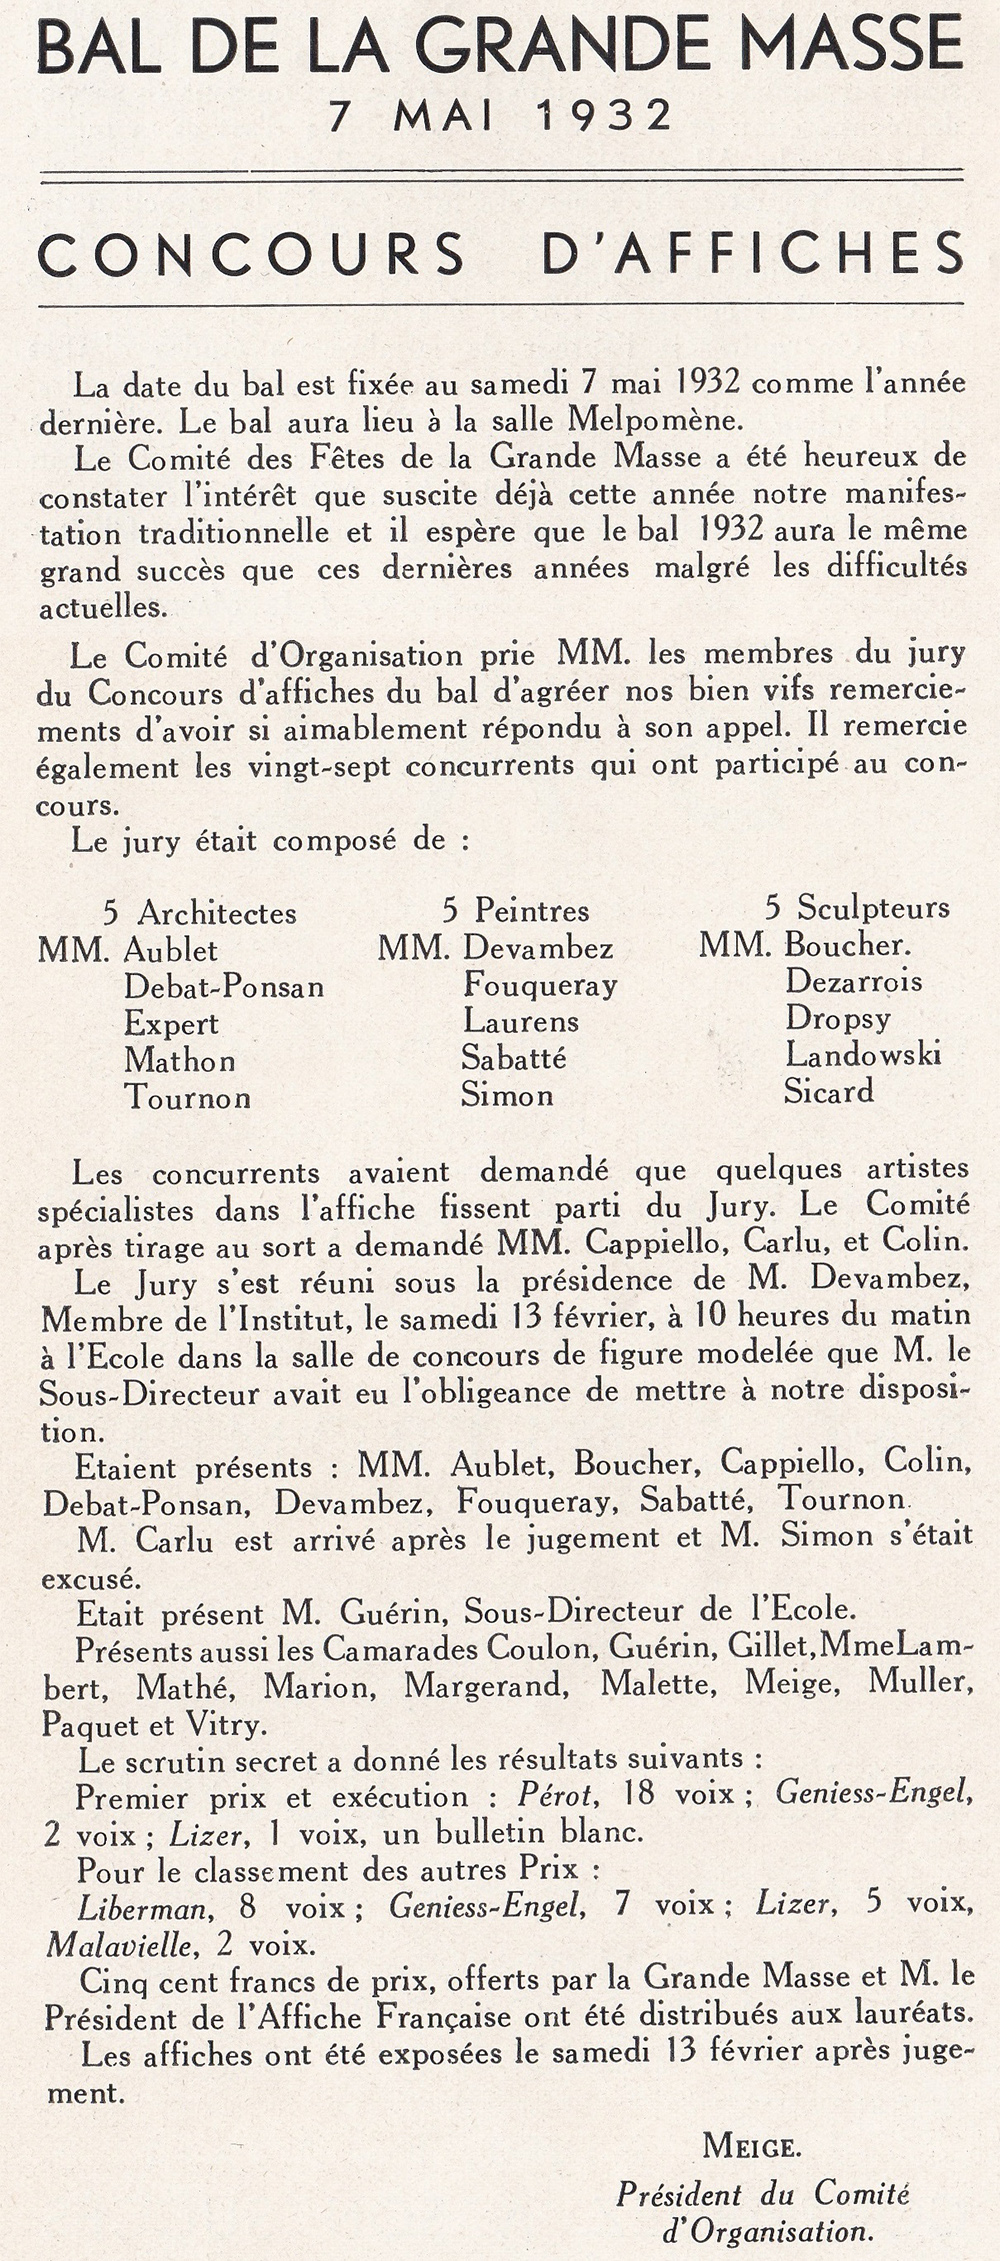 193203_Bulletin-GMBA_Concours-affiches.jpg